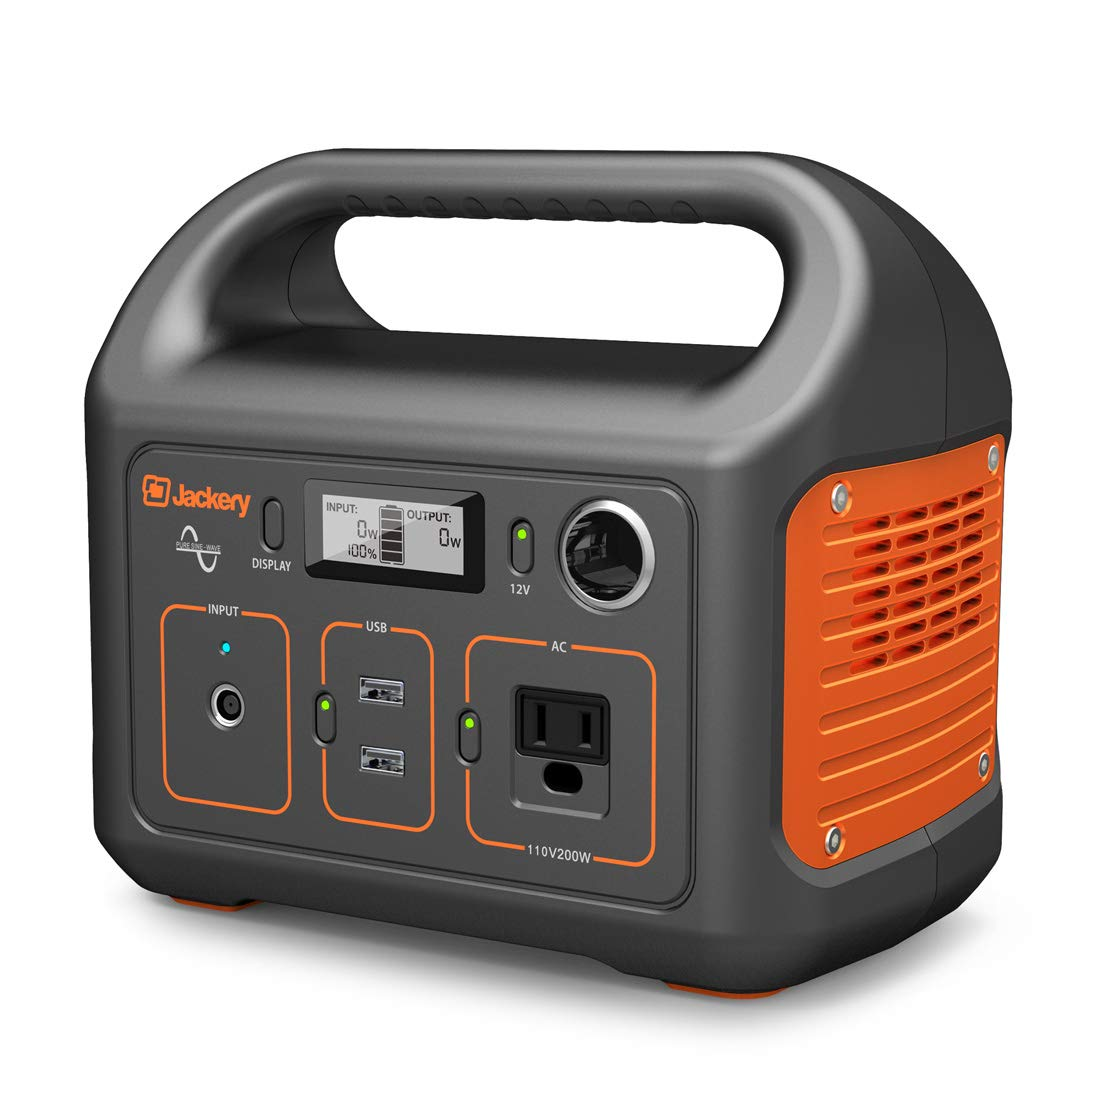 Jackery Portable Power Station Generator Explorer 240, 240Wh Emergency Backup Lithium Battery, 110V/200W